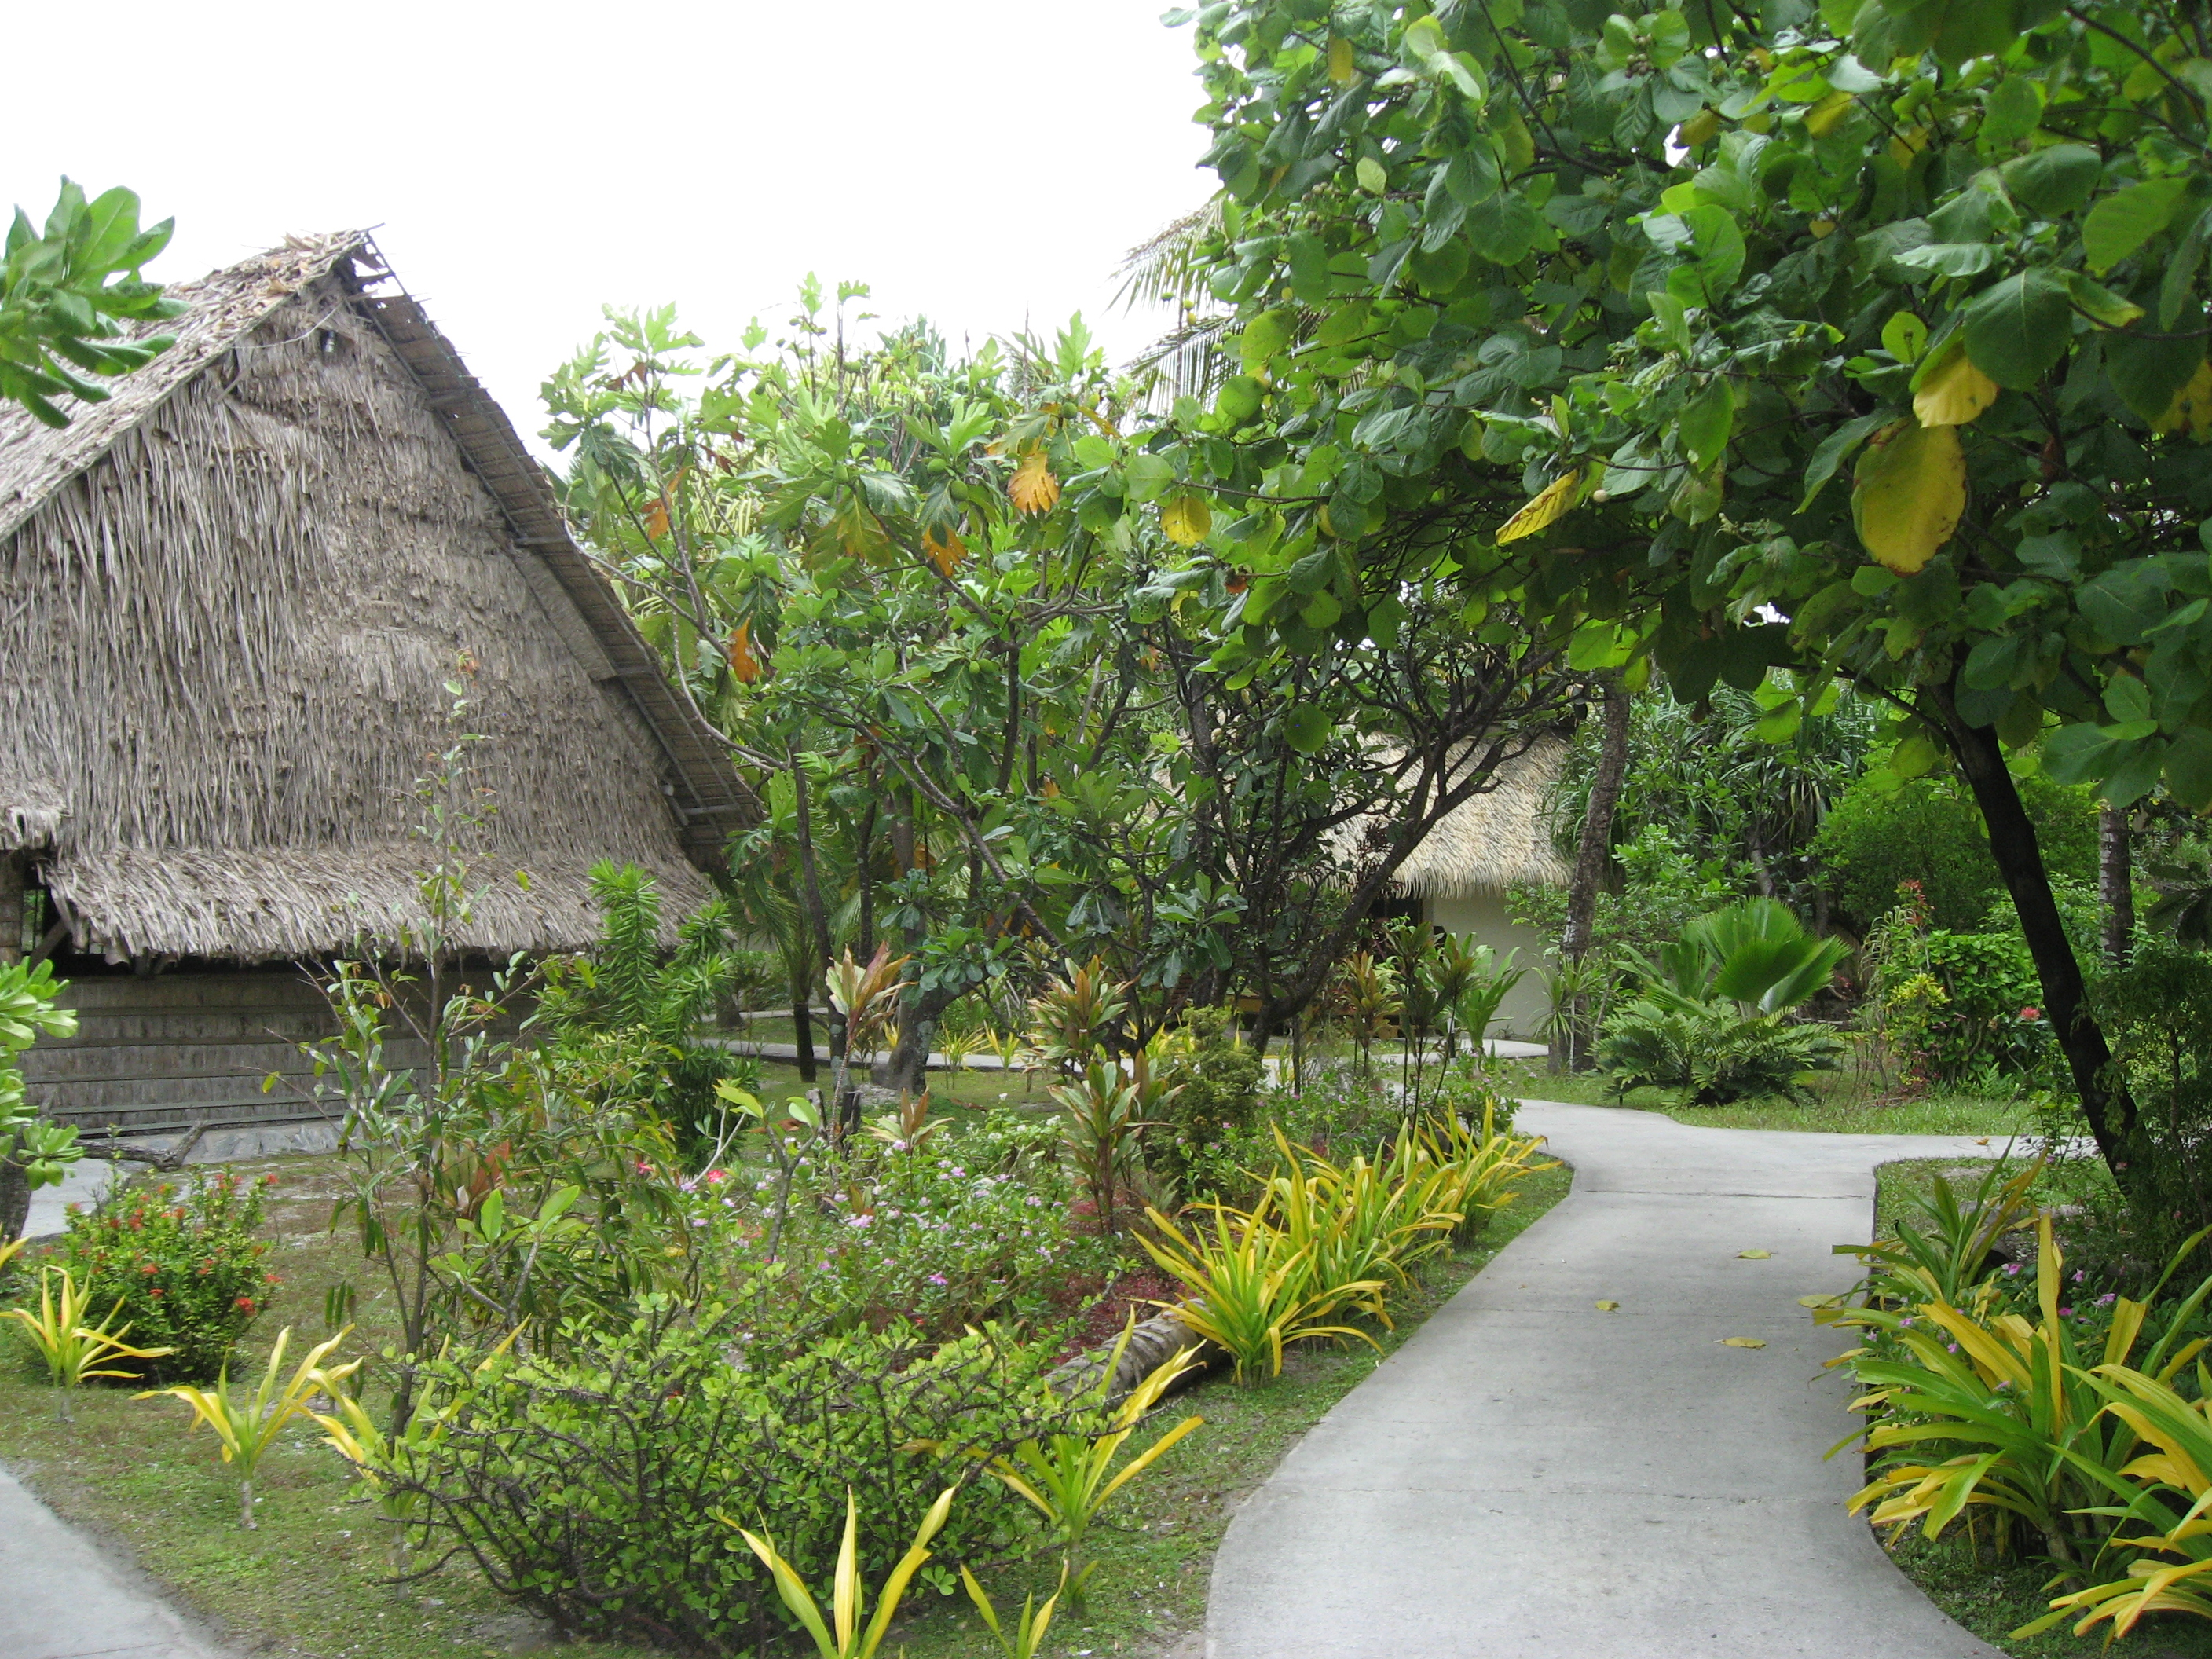 traditional grass thatched hut